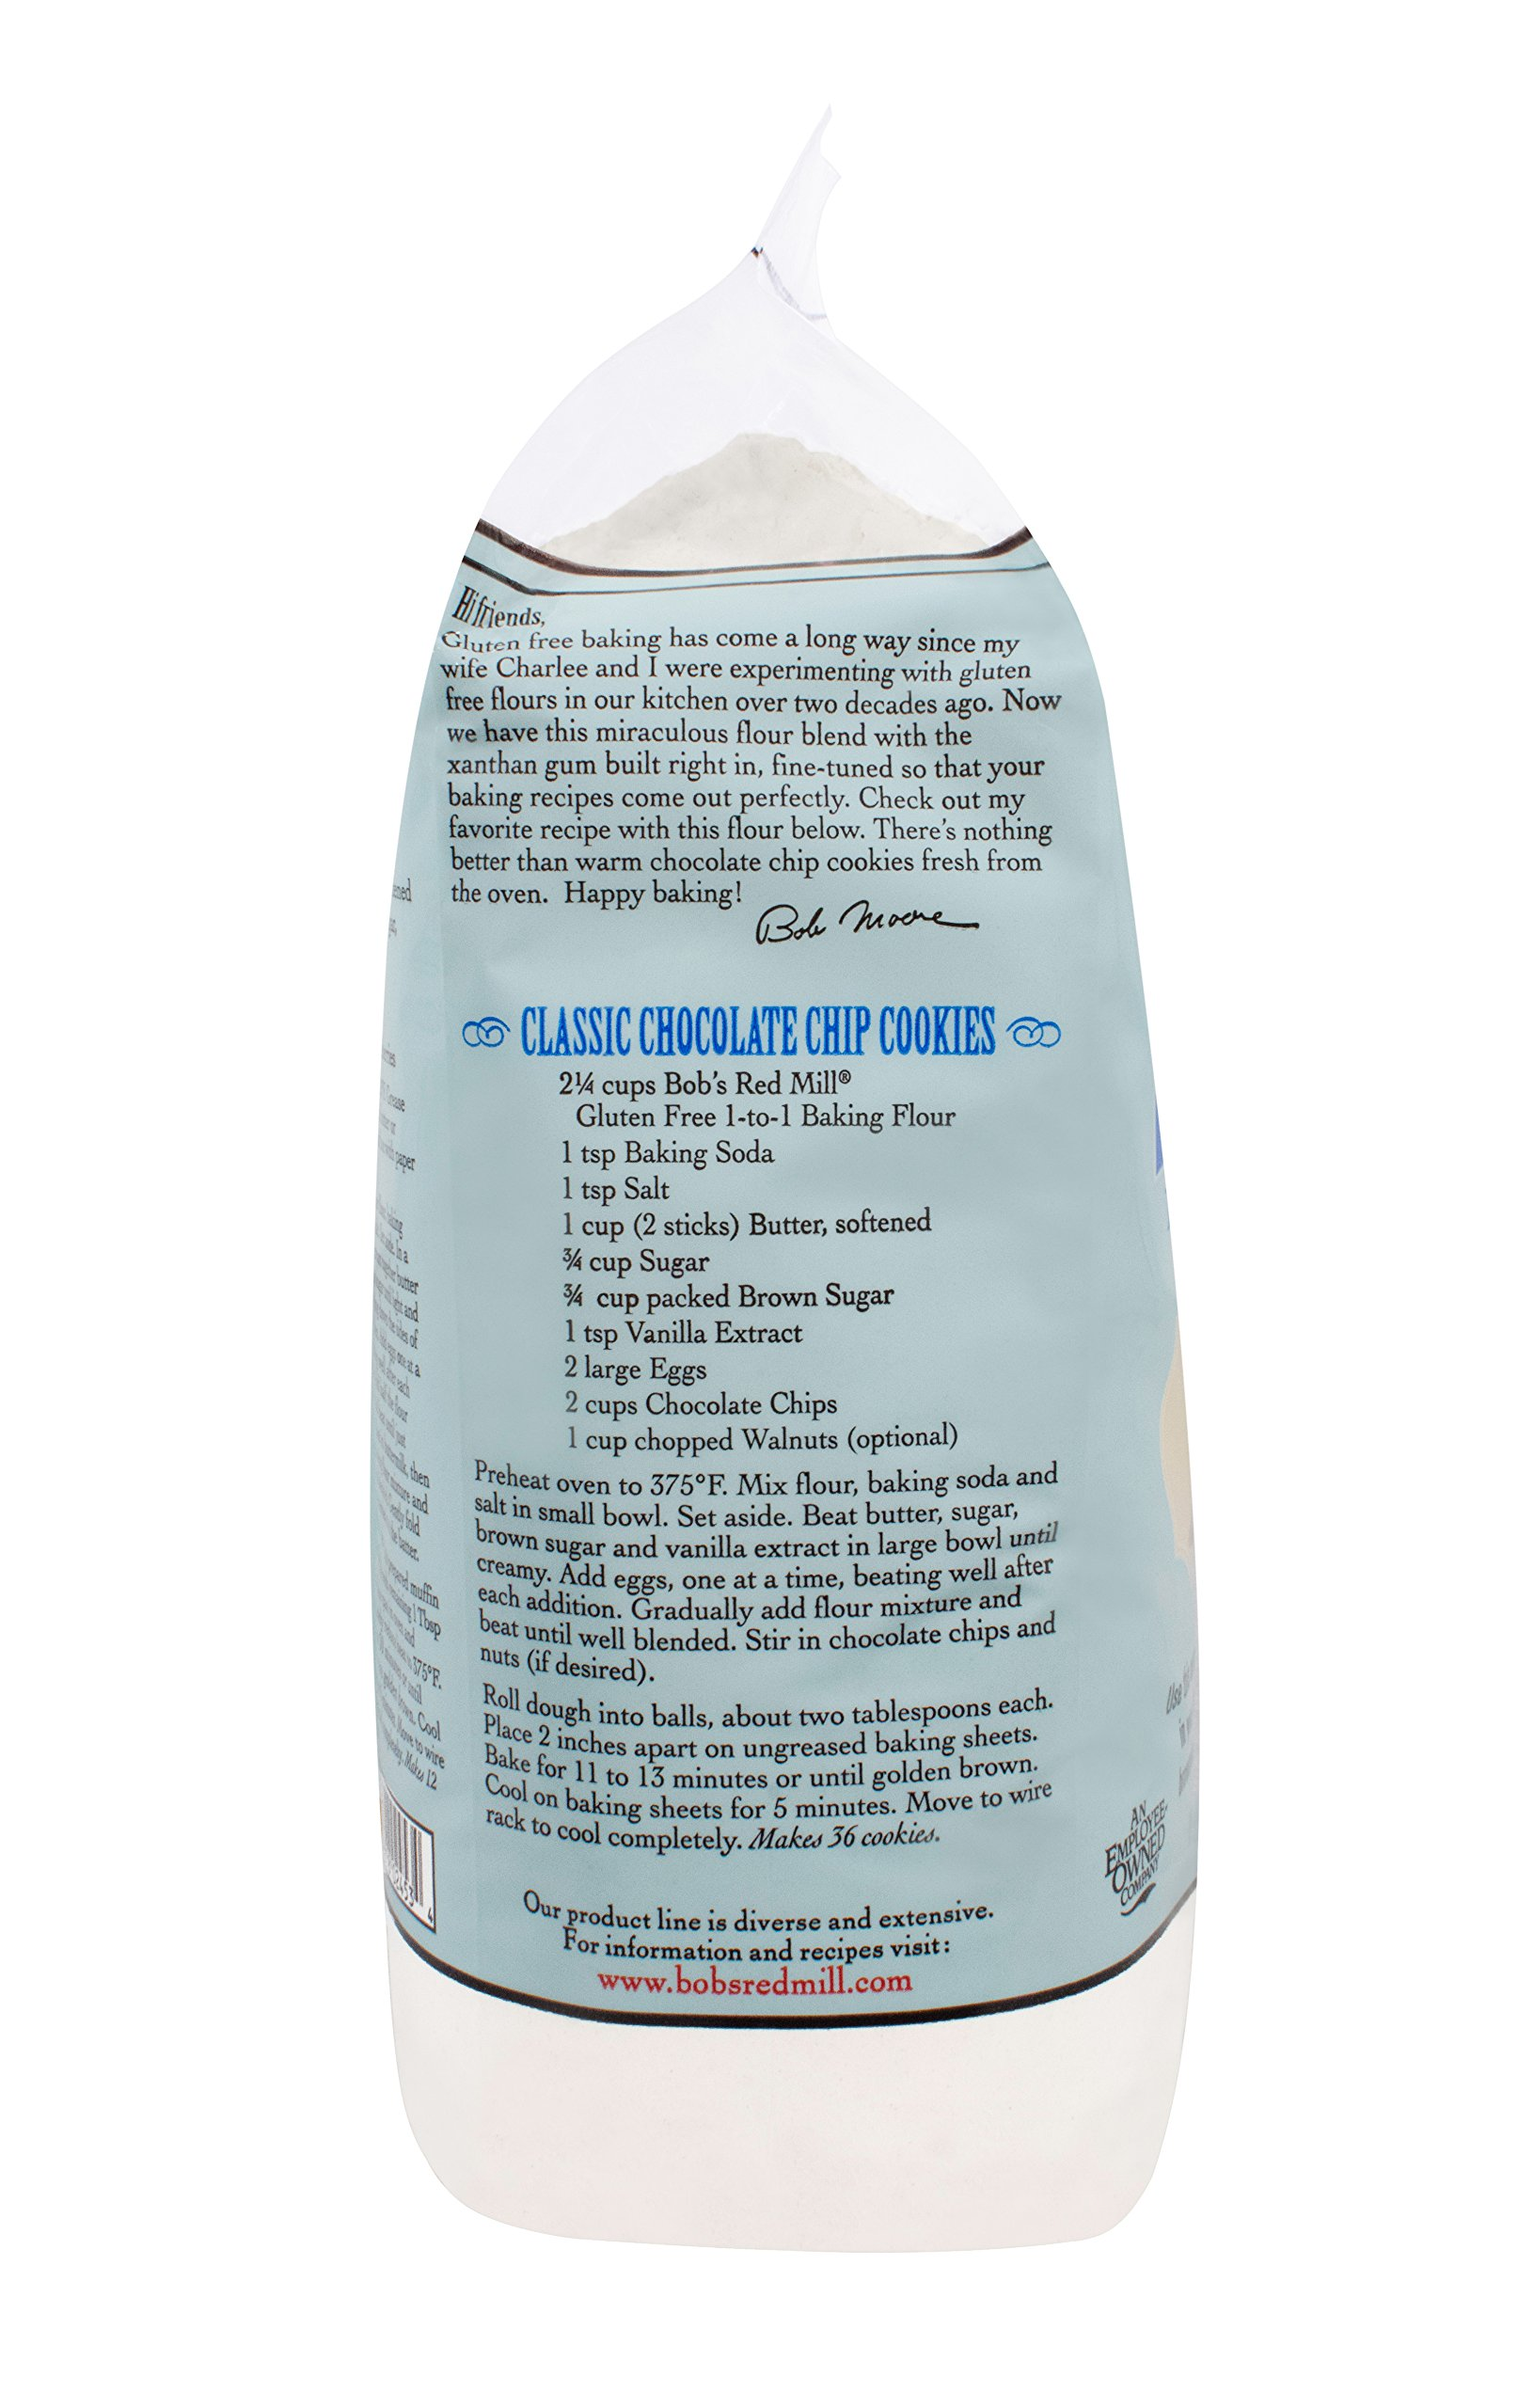 Bob's Red Mill Gluten Free 1-to-1 Baking Flour, 5 Pound by Bob's Red Mill (Image #7)